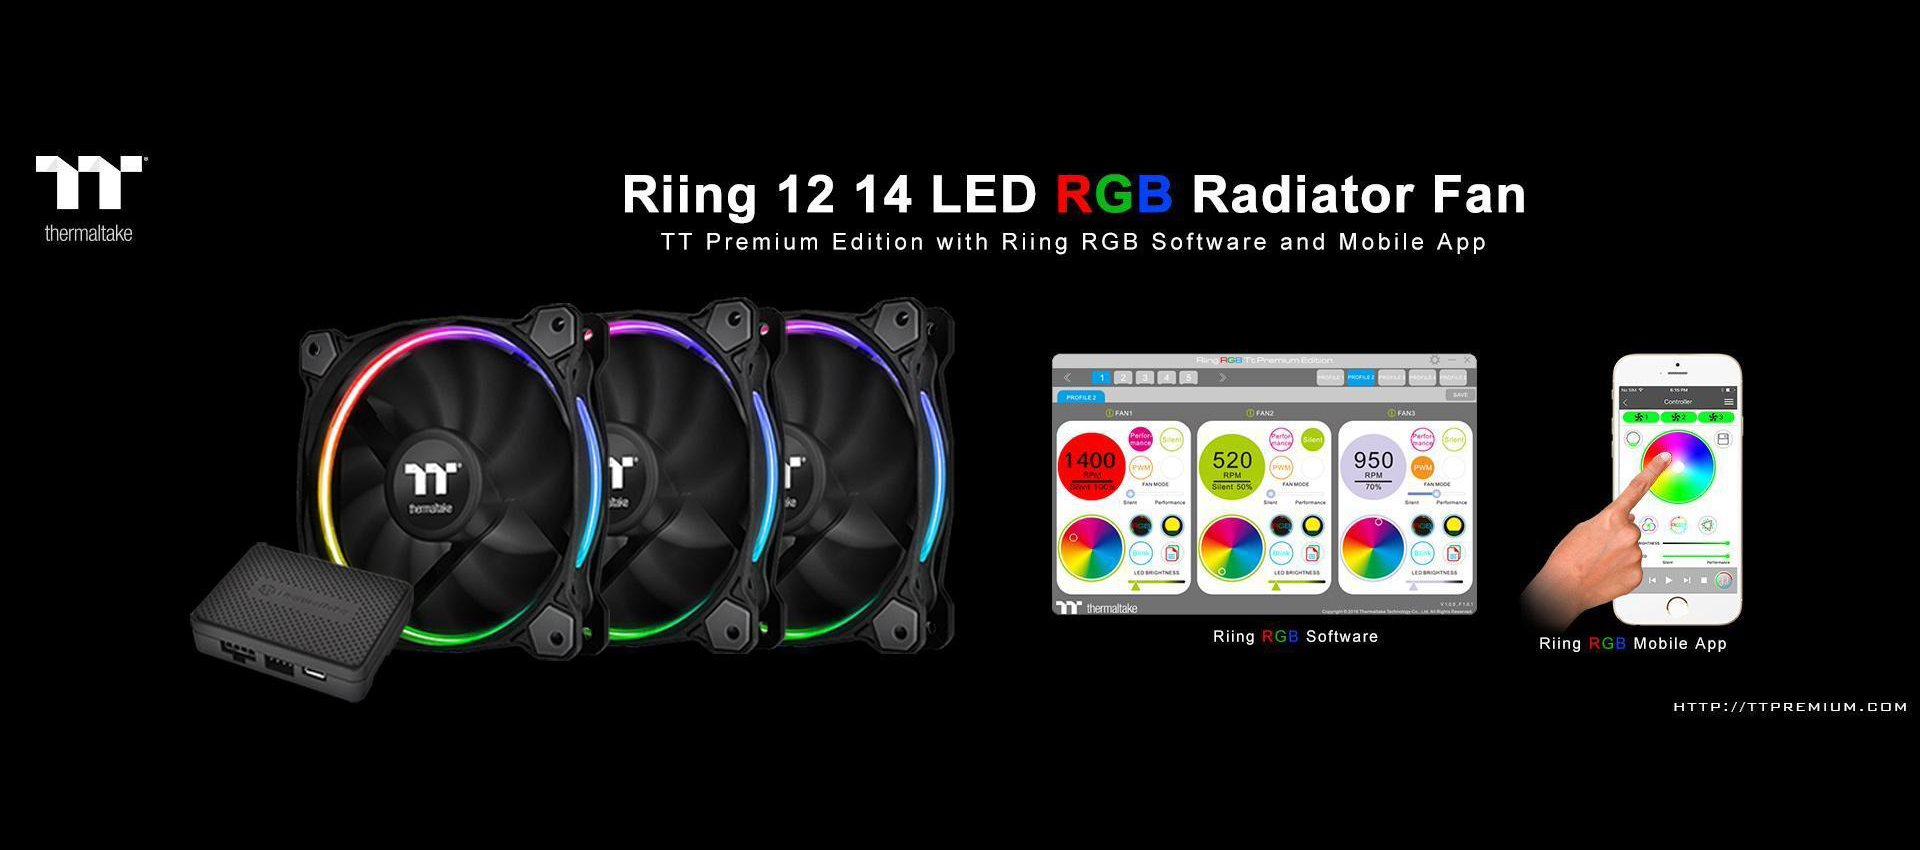 Riing 14 RGB Radiator Fan TT Premium Edition